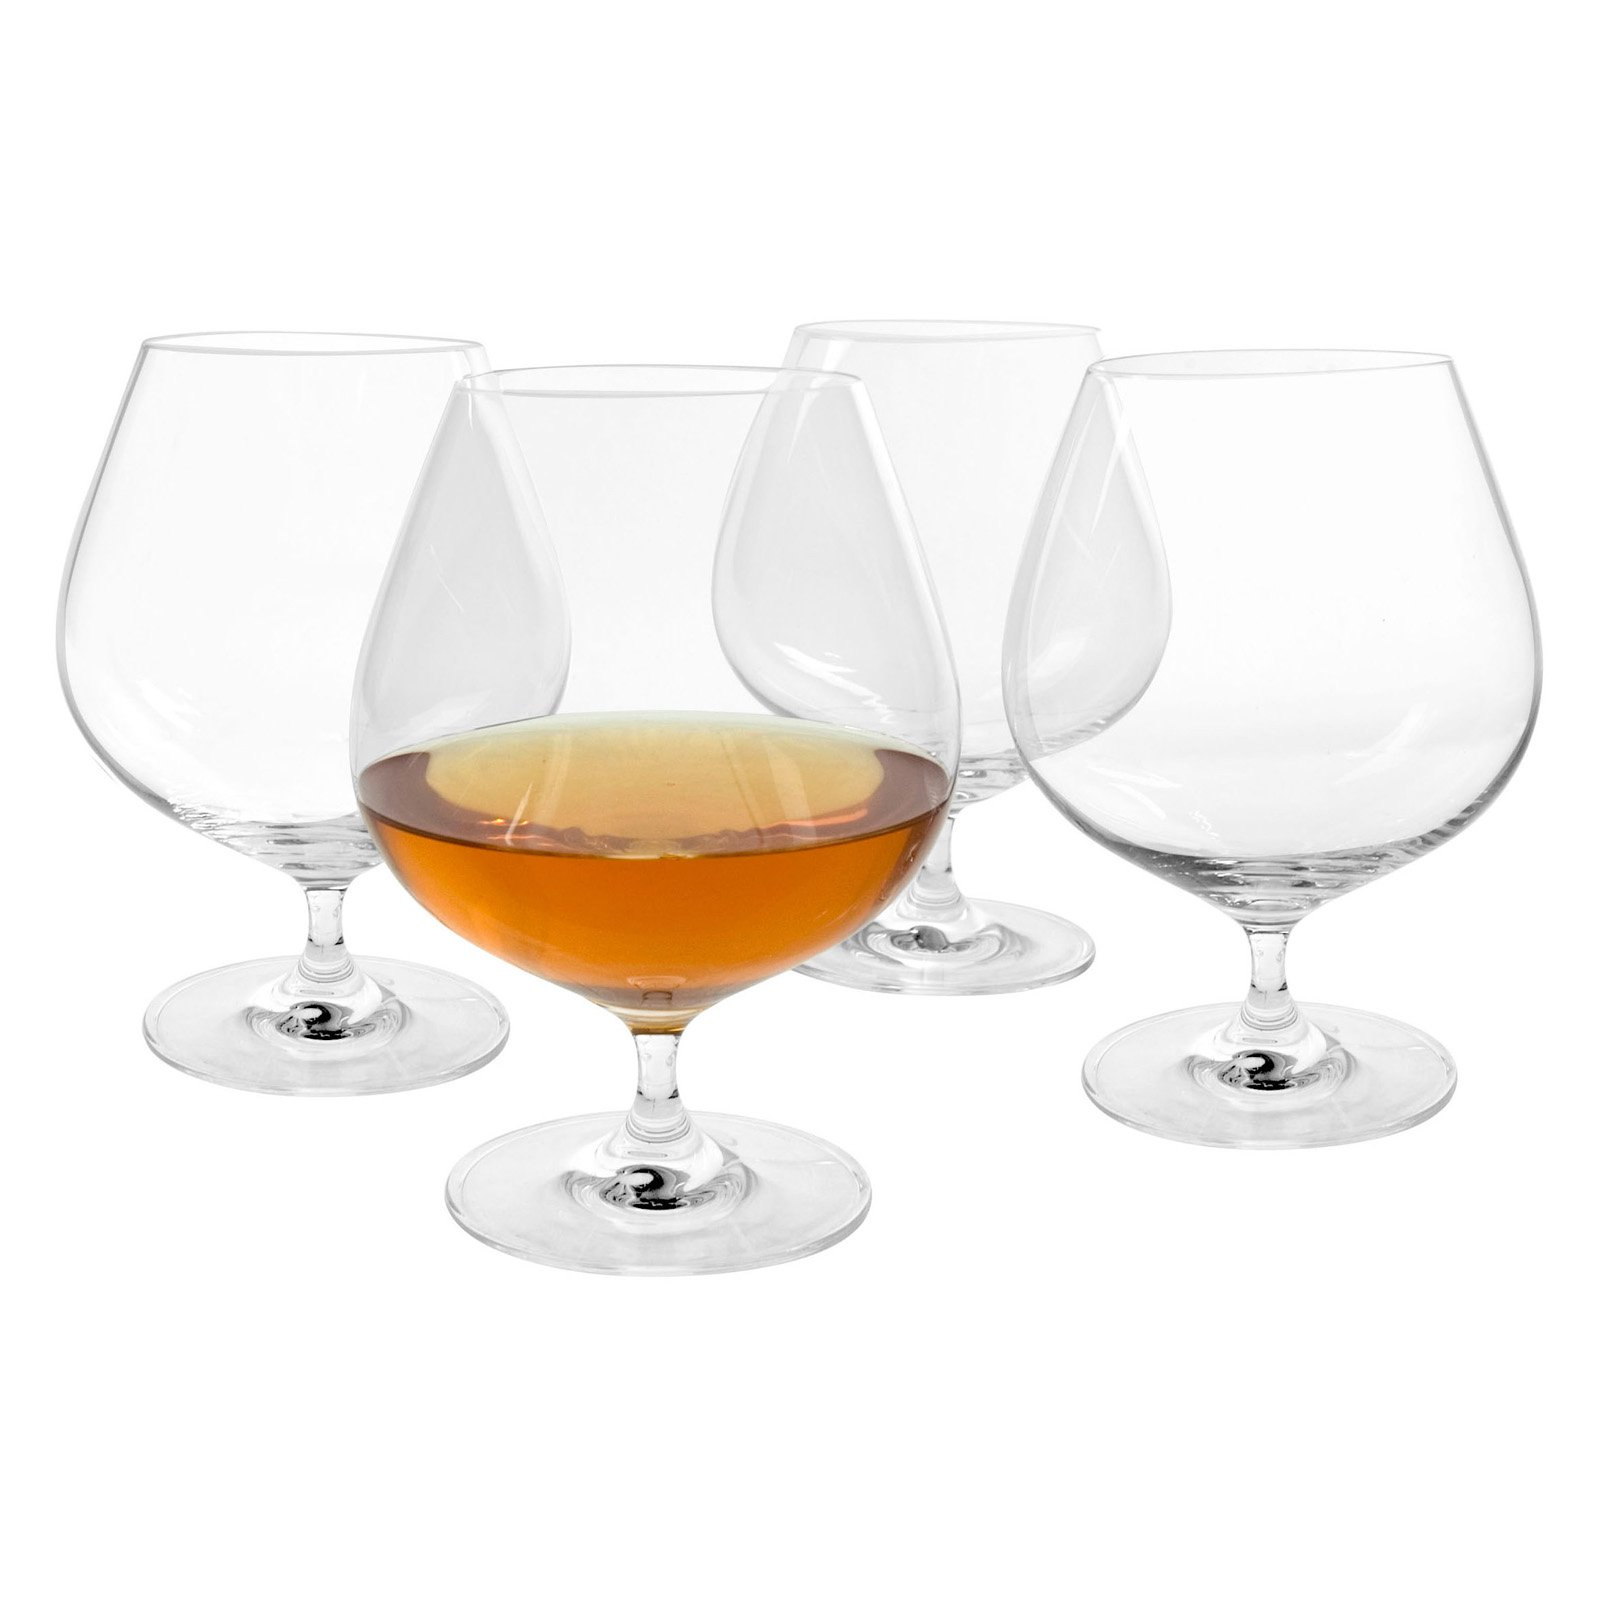 Artland Inc. Veritas Cognac Glasses Set of 4 by Artland